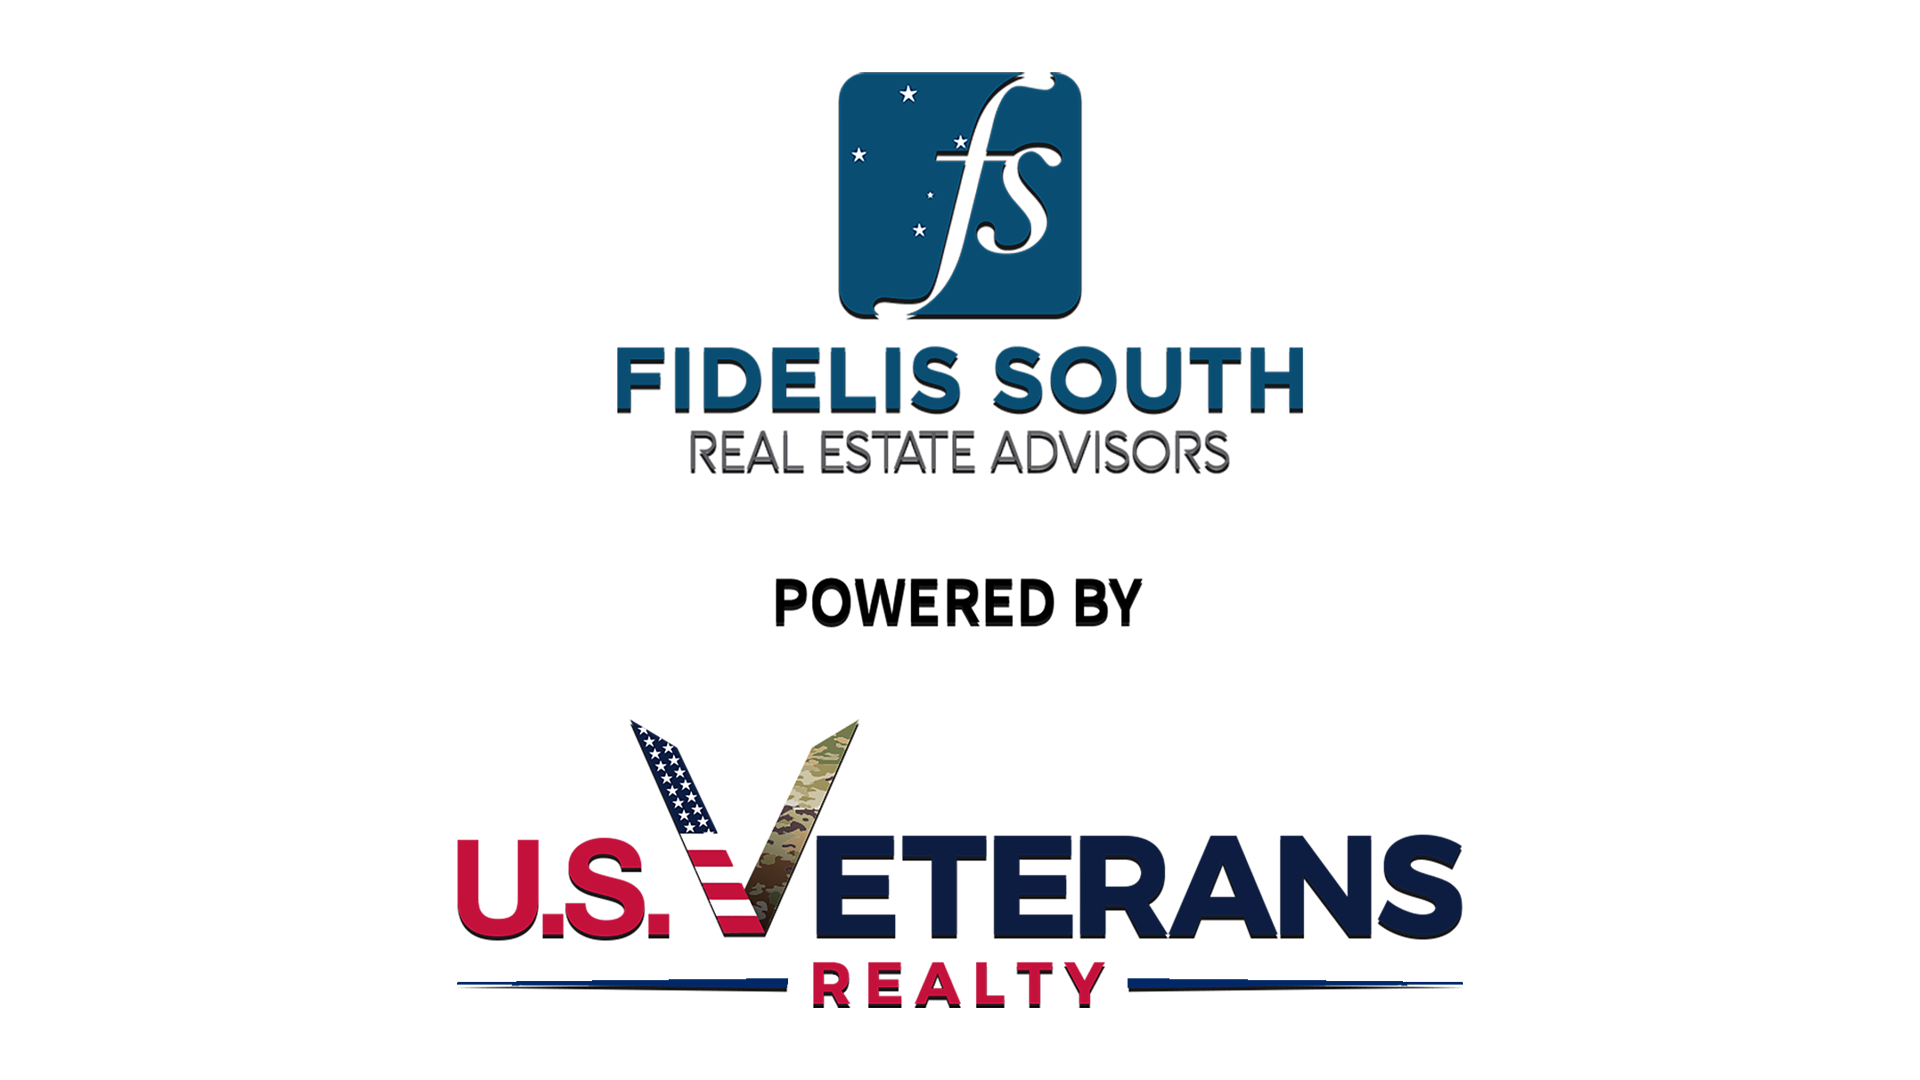 Fidelis South | U.S. Veterans Realty